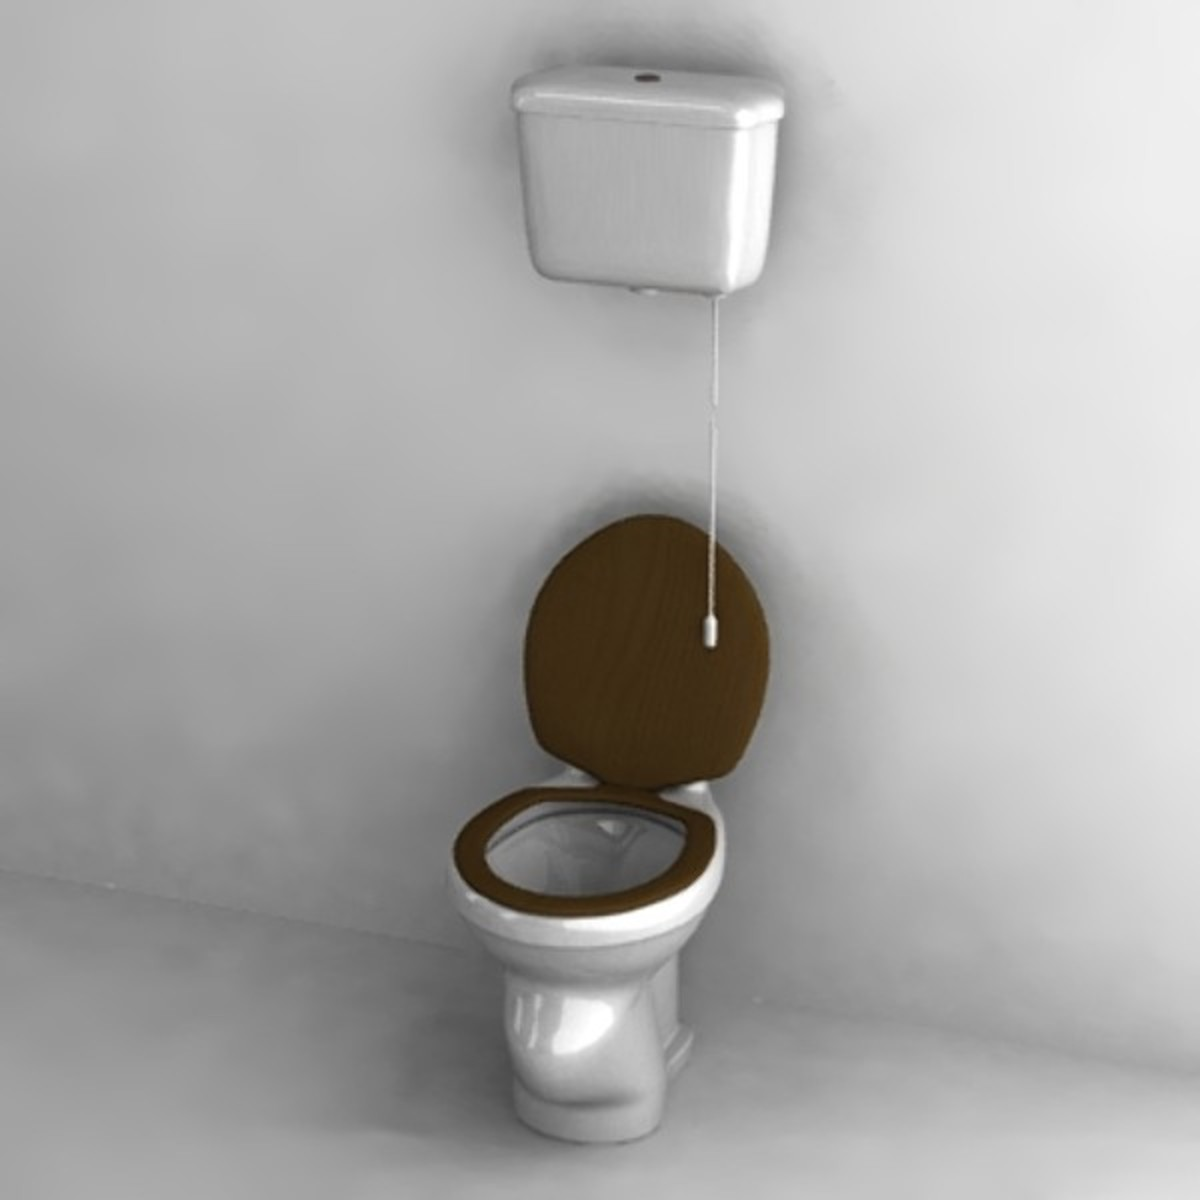 A typical Dutch toilet